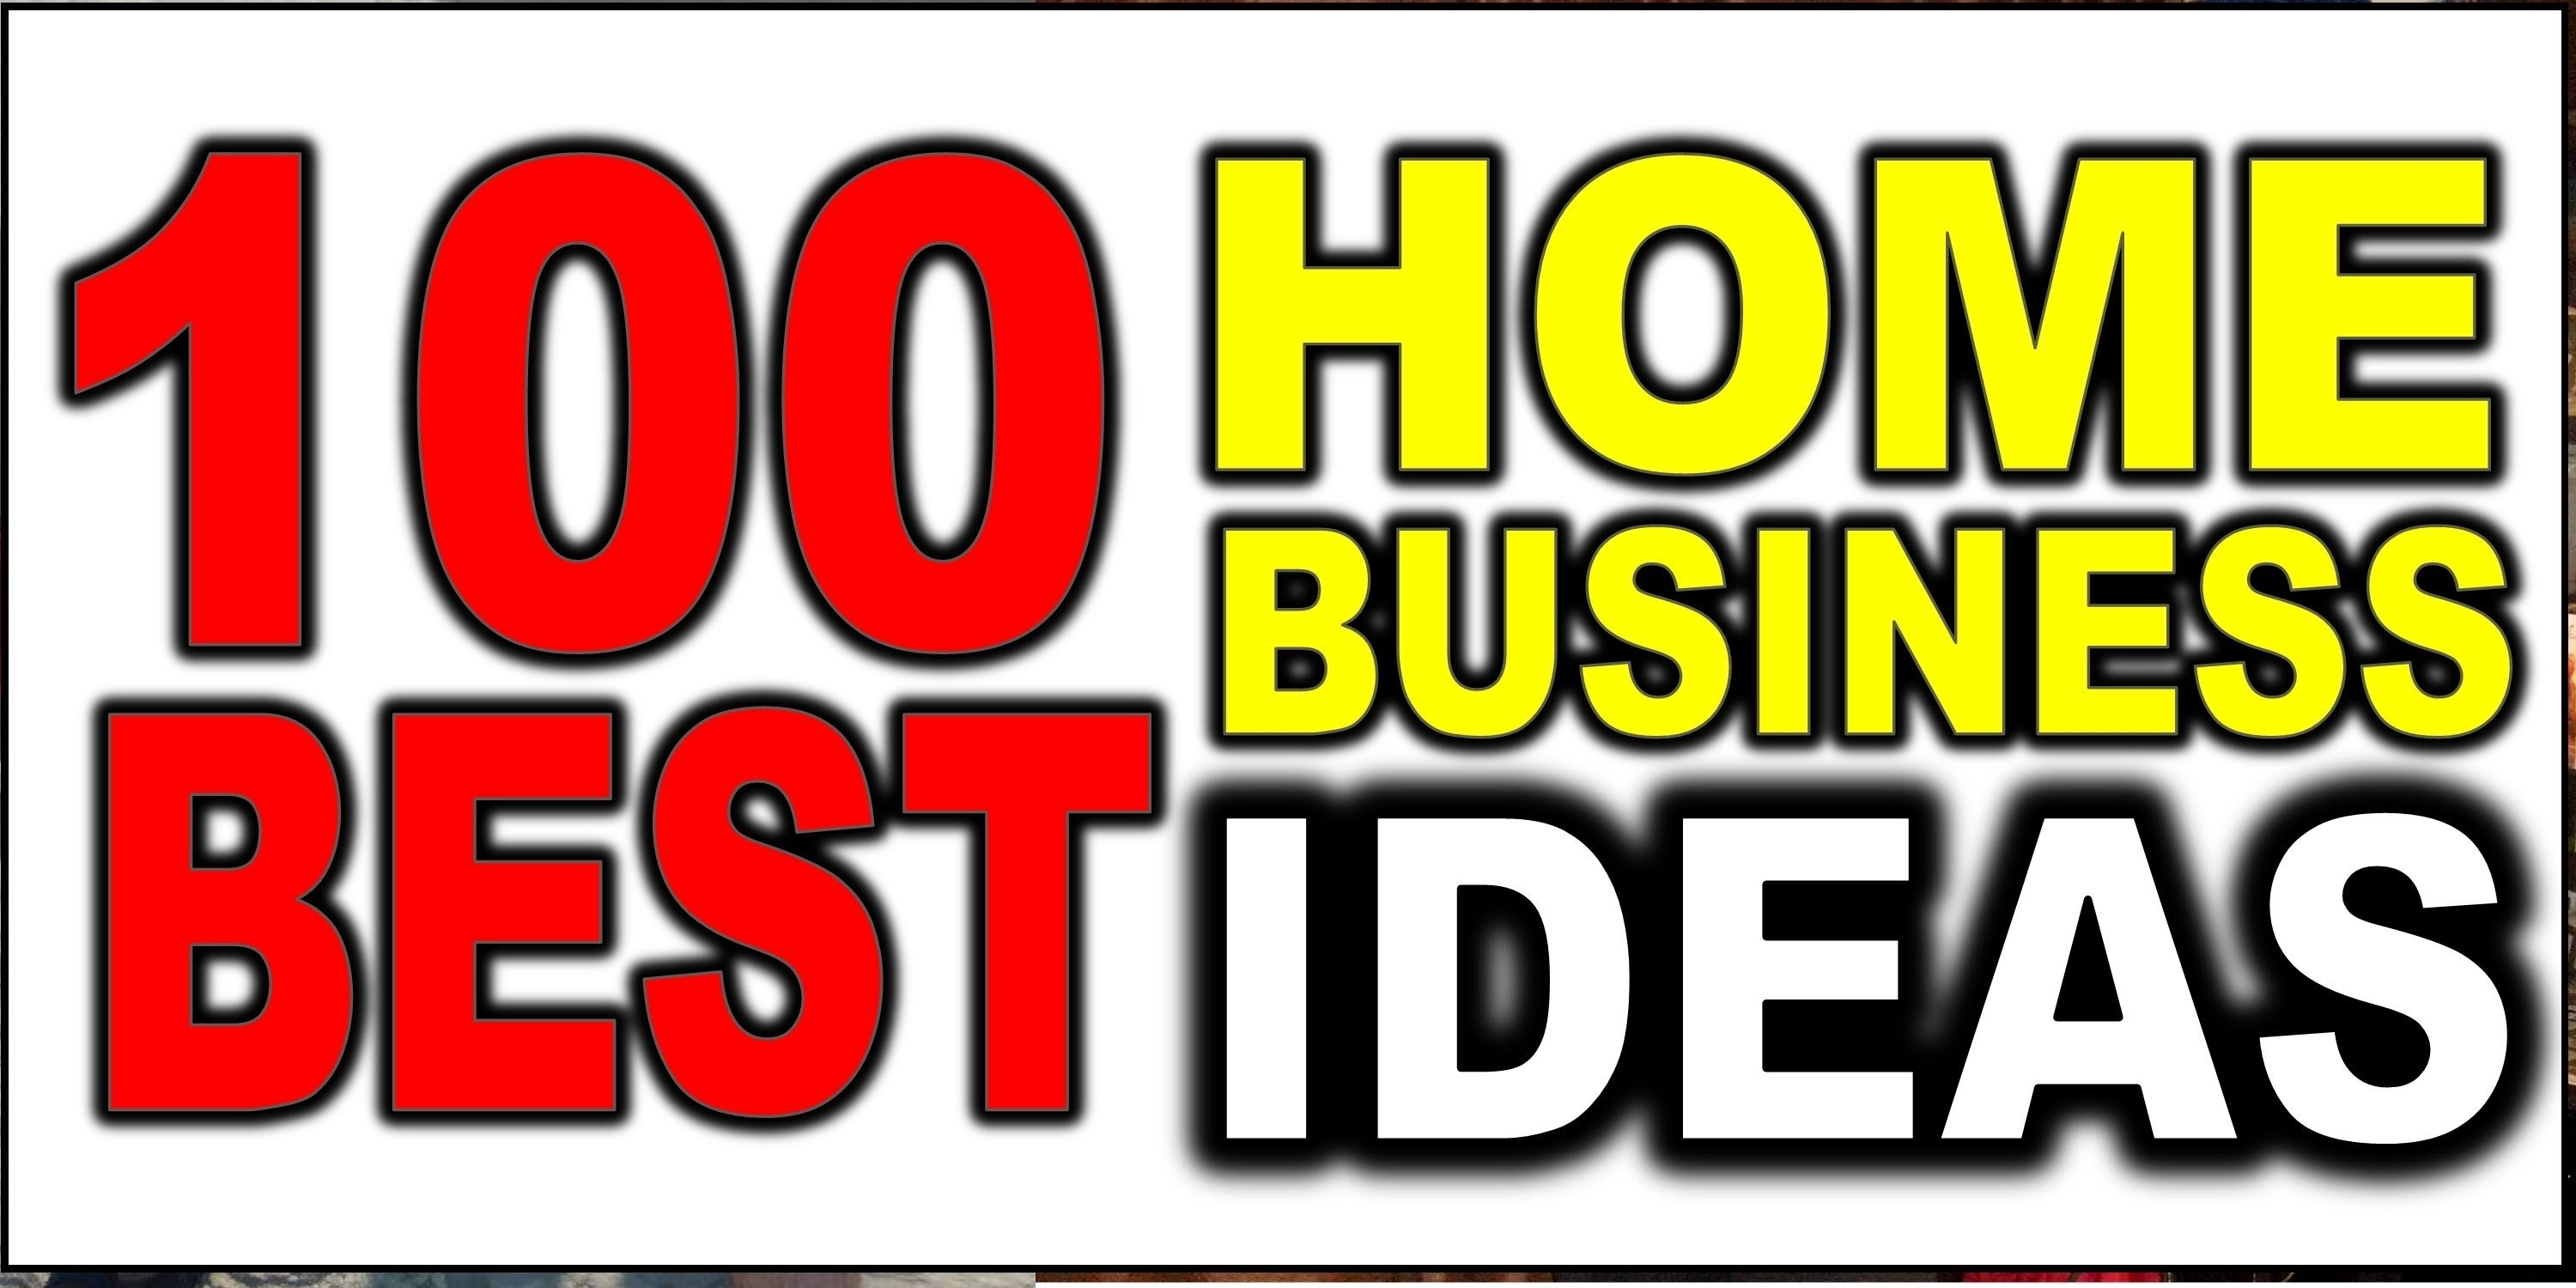 100 work from home business idea's - youtube